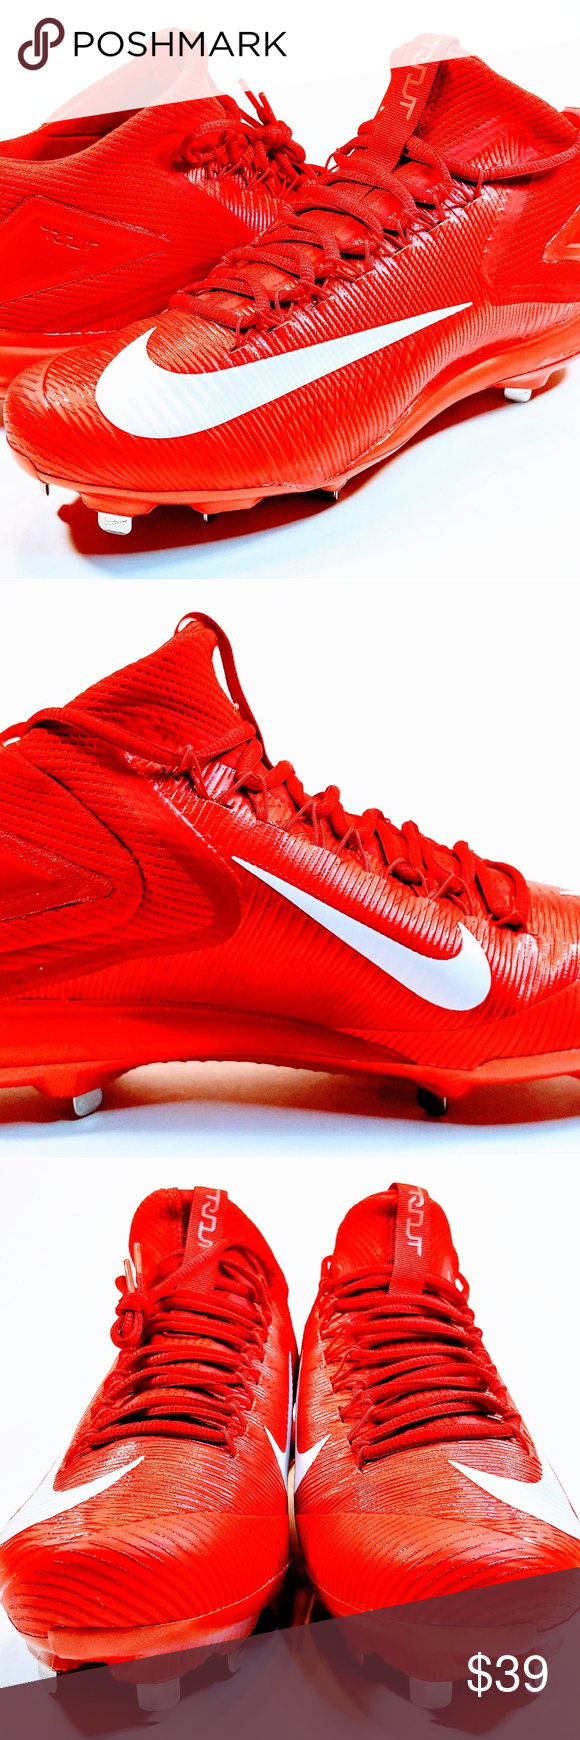 Nike Zoom Mike Trout 3 Men S Red Baseball Cleats New Nike Zoom Mike Trout 3 Metal Men S Baseball Shoes Cleats 11 5 Baseball Cleats Baseball Shoes Reds Baseball